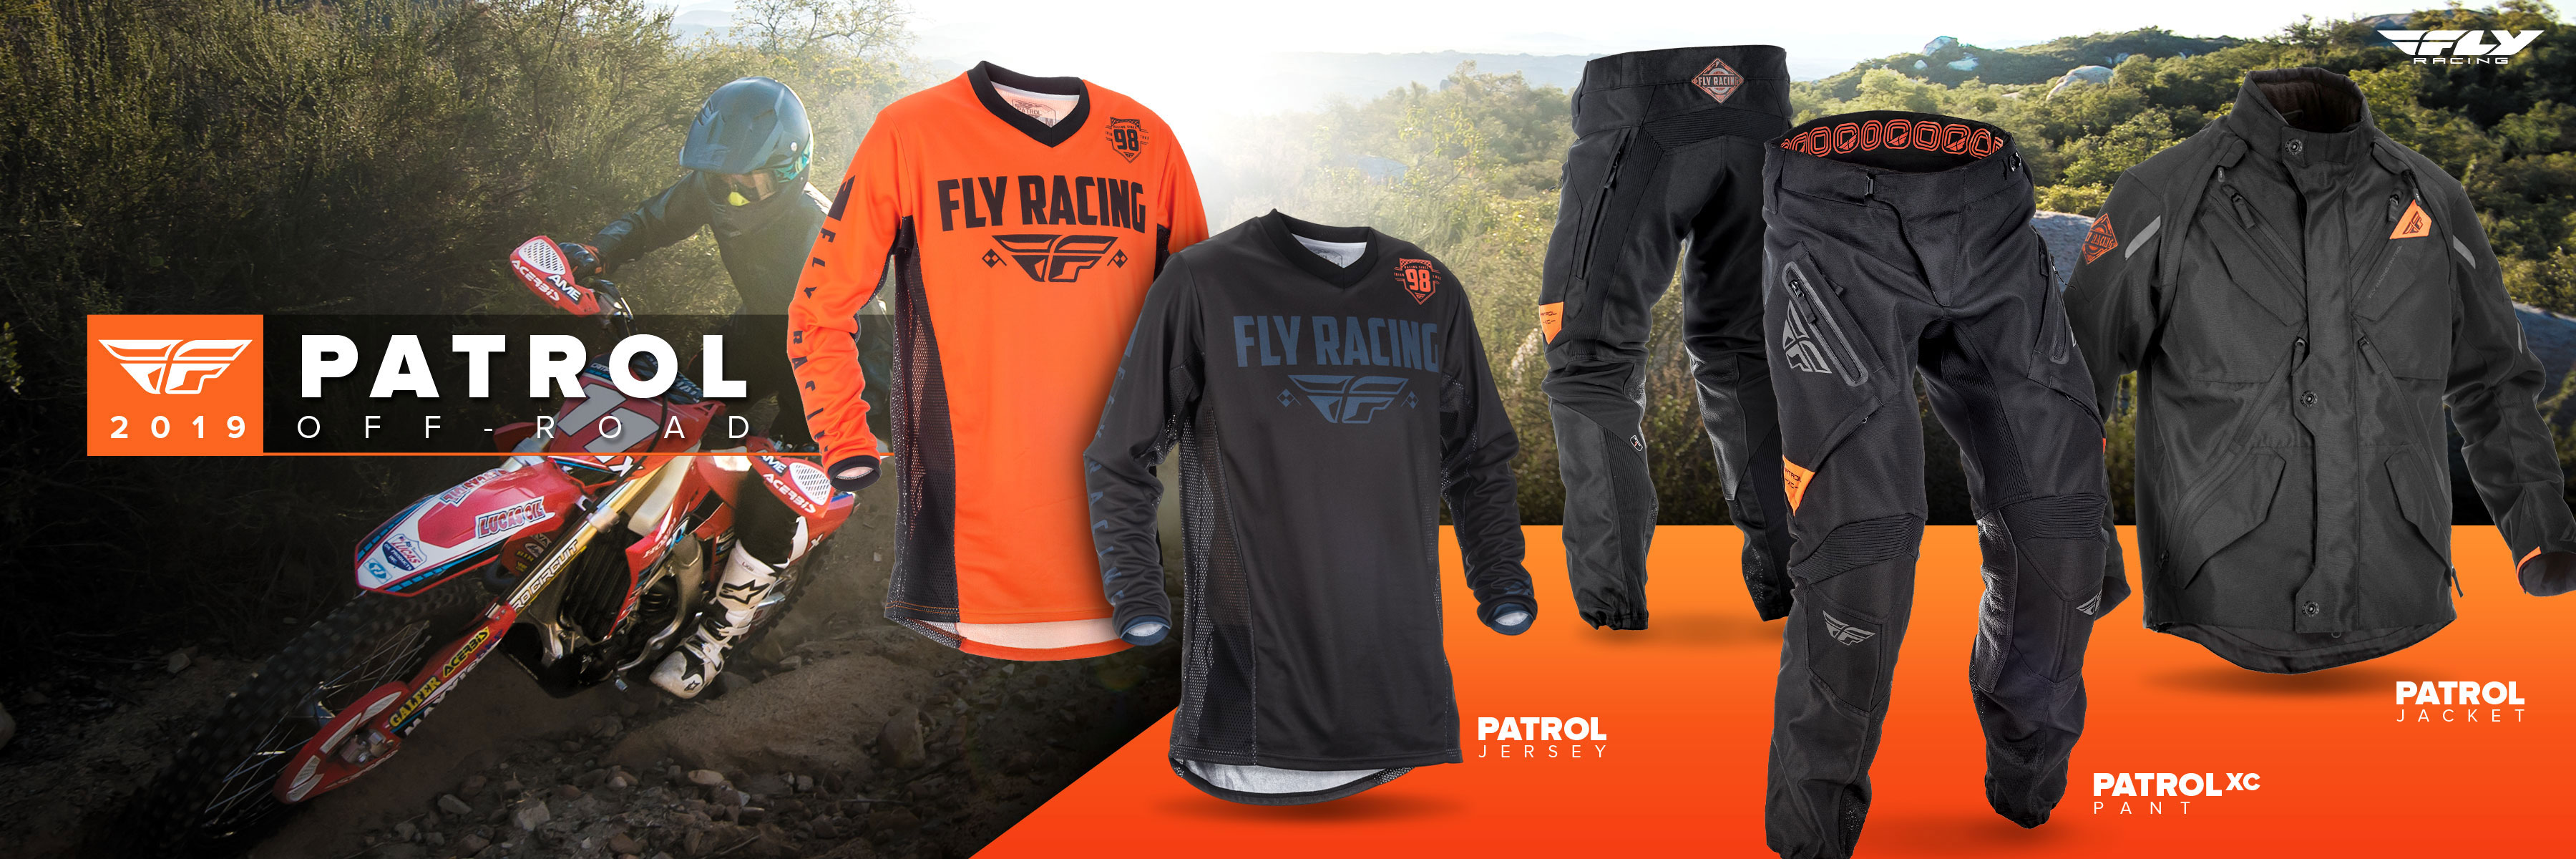 Fly Racing Patrol Off-Road Gear - Available now!